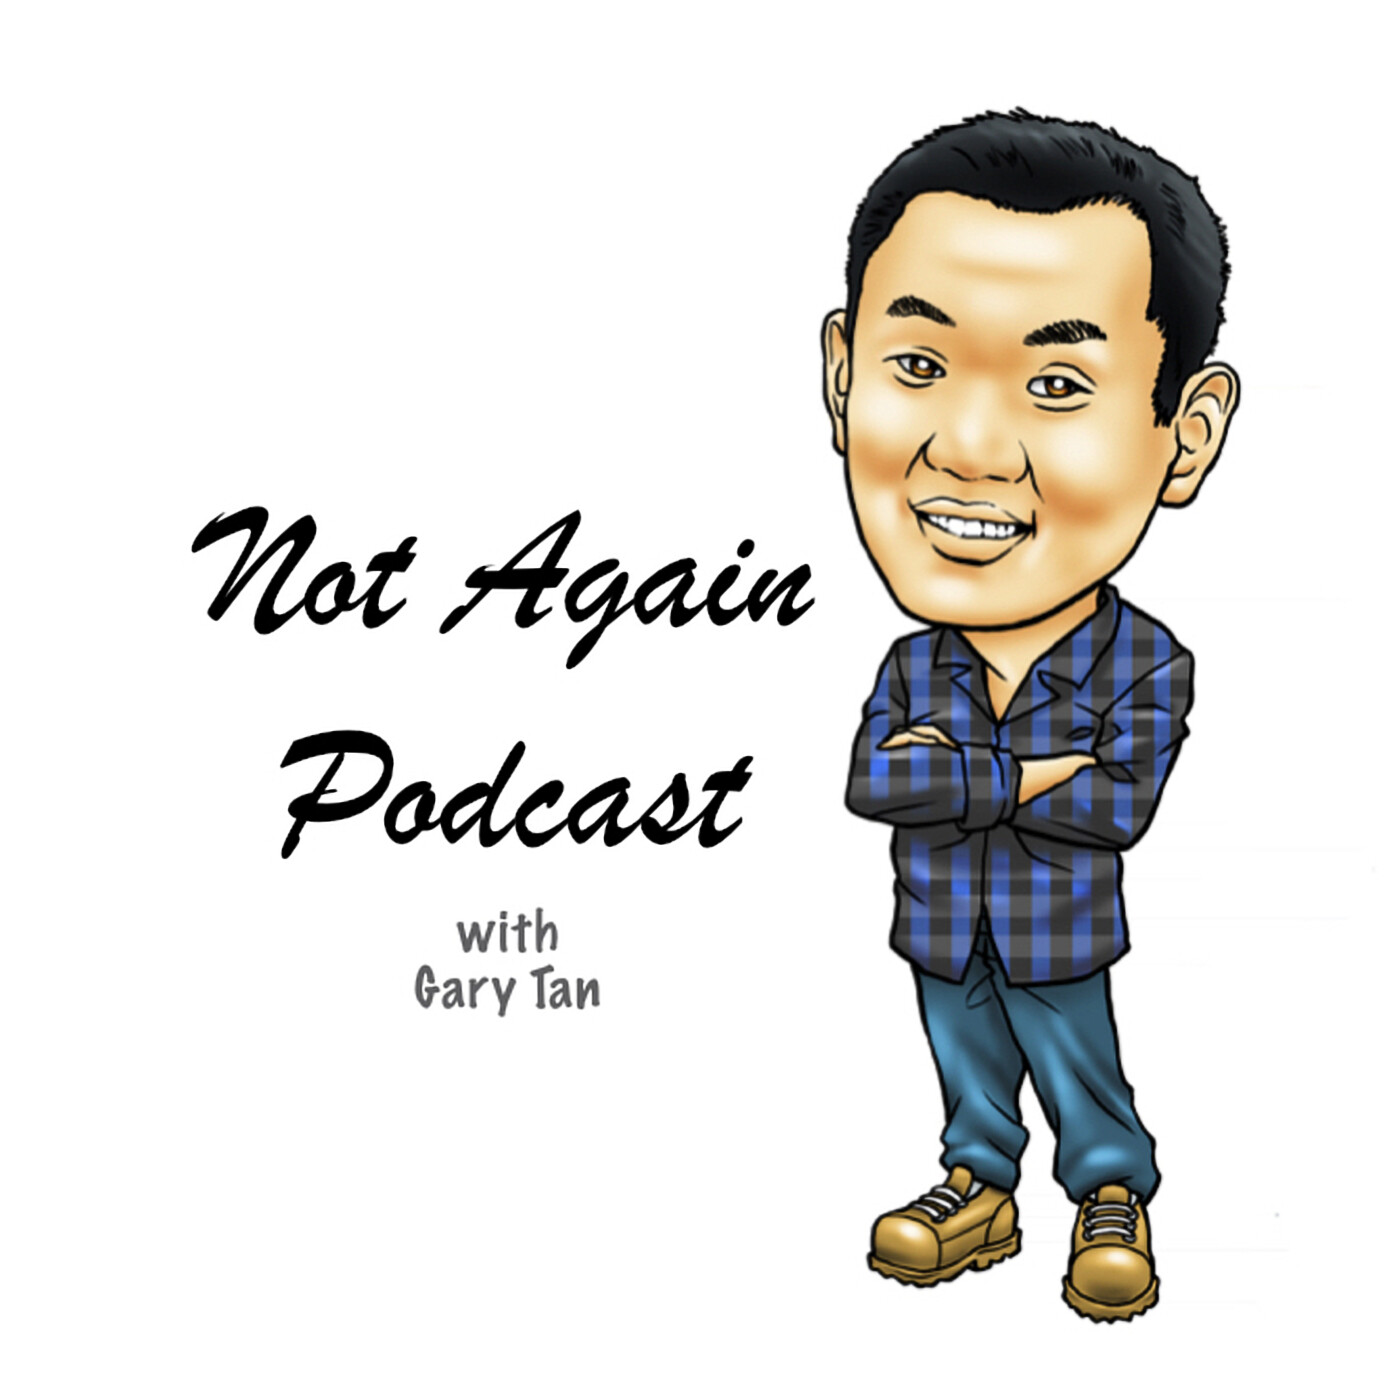 Not Again Podcast: Into the Vault: #YourJobSucks - Master of Ceremony